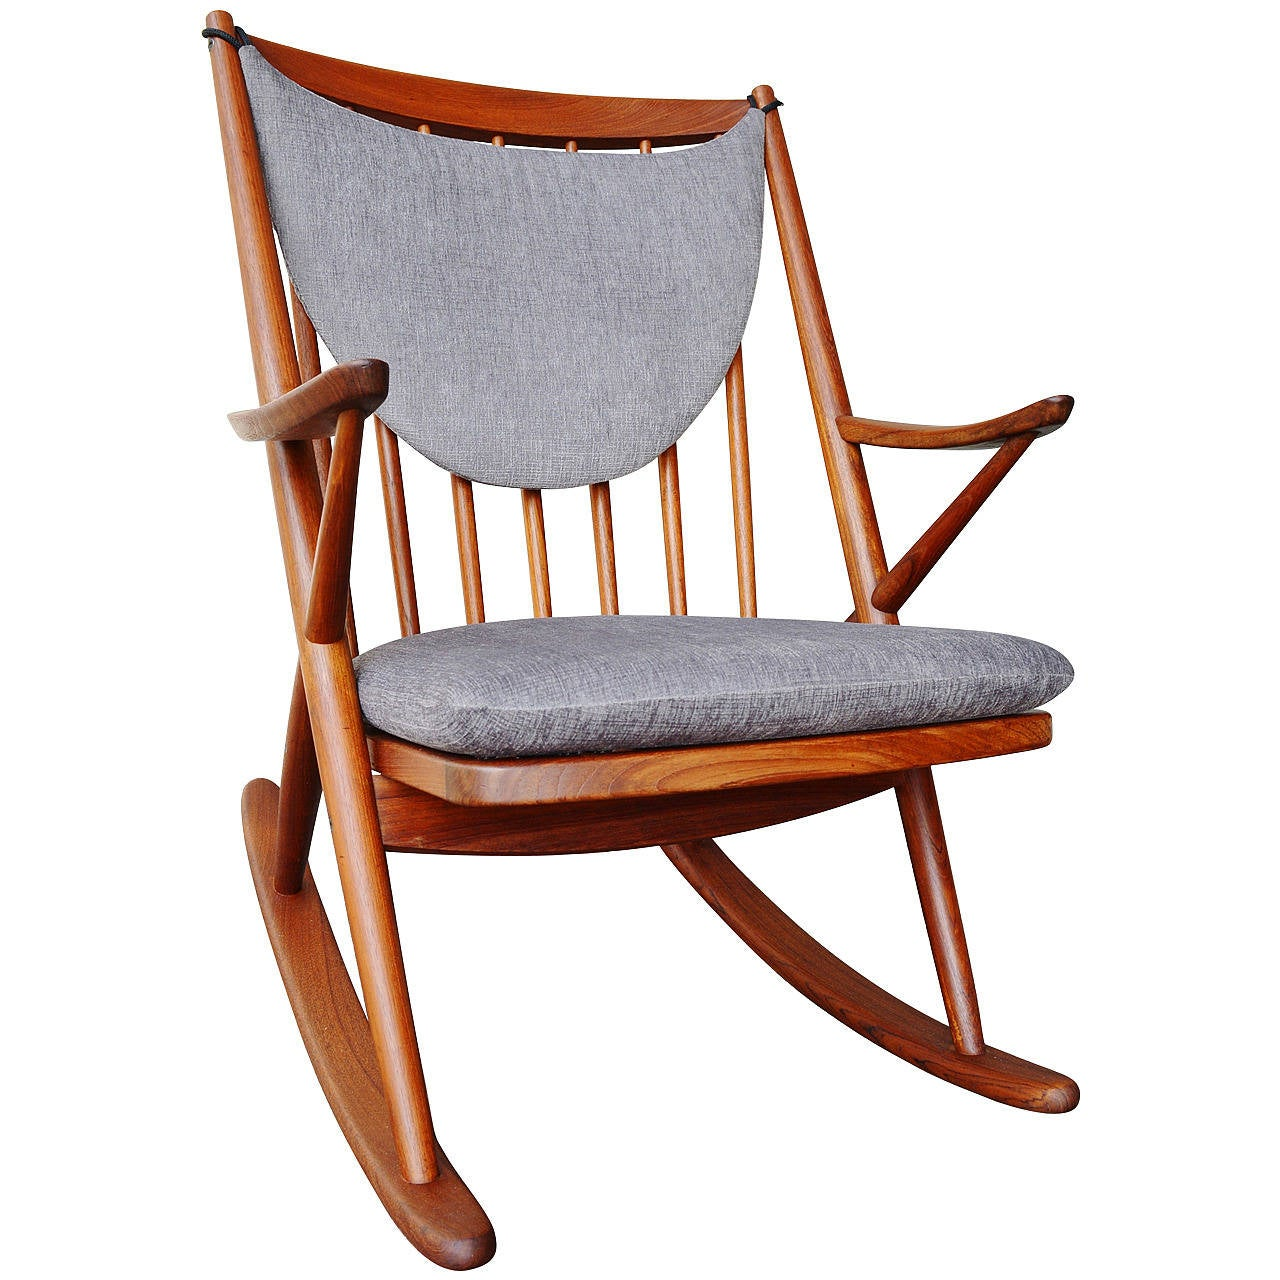 mid century modern rocking chair canada comfortable living room danish teak by frank reenskaug for